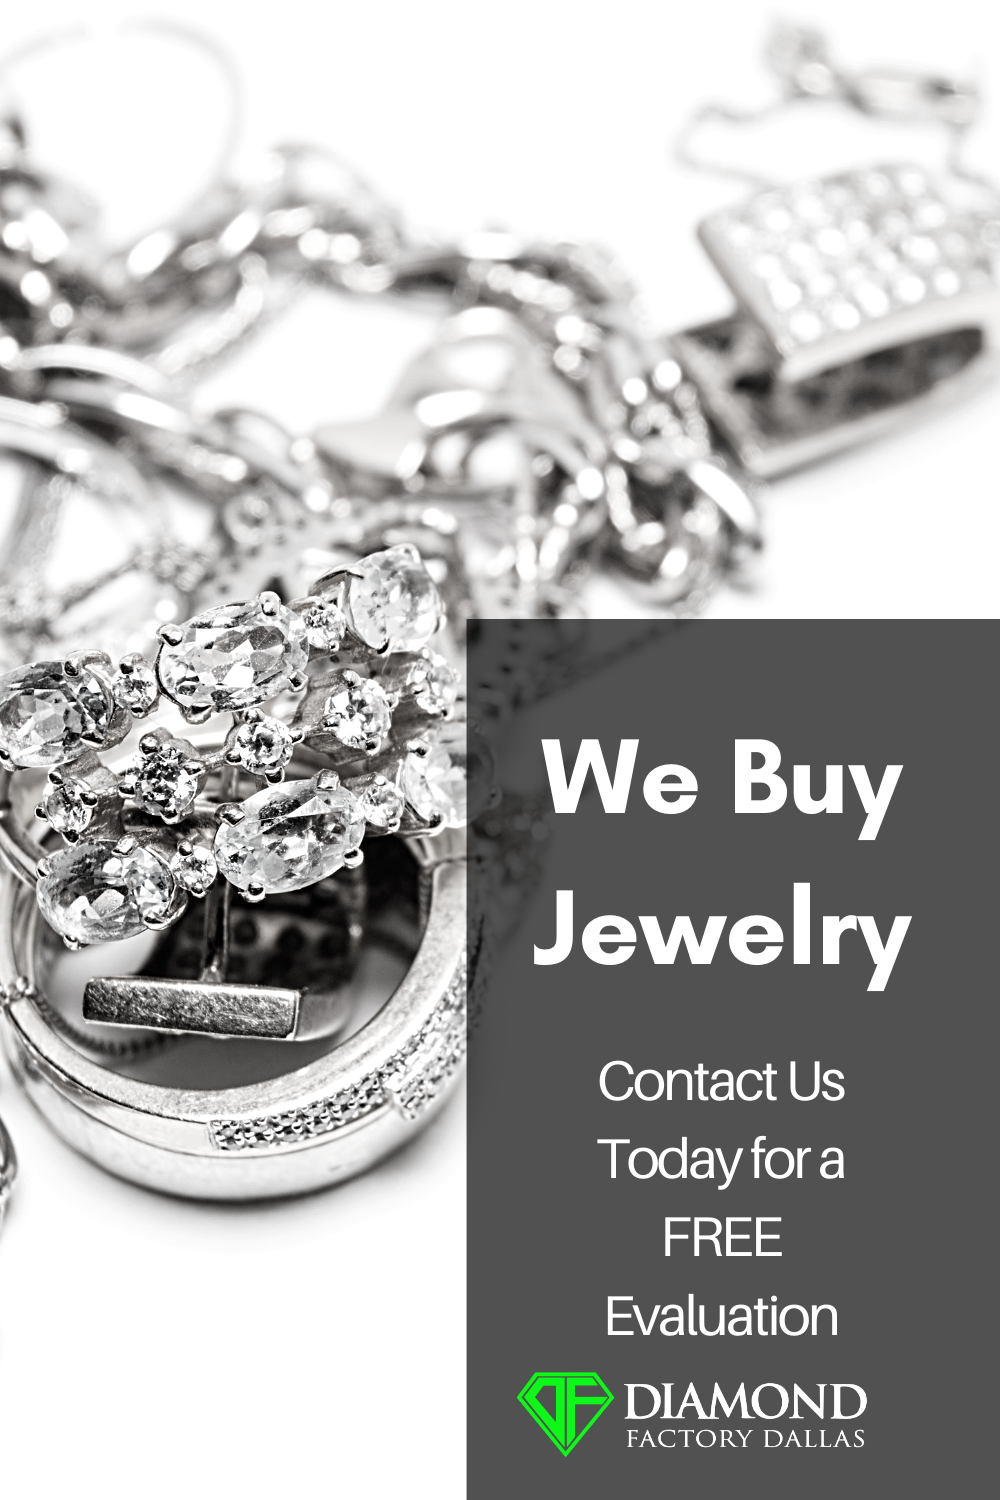 25+ Where can i buy jewelry to sell ideas